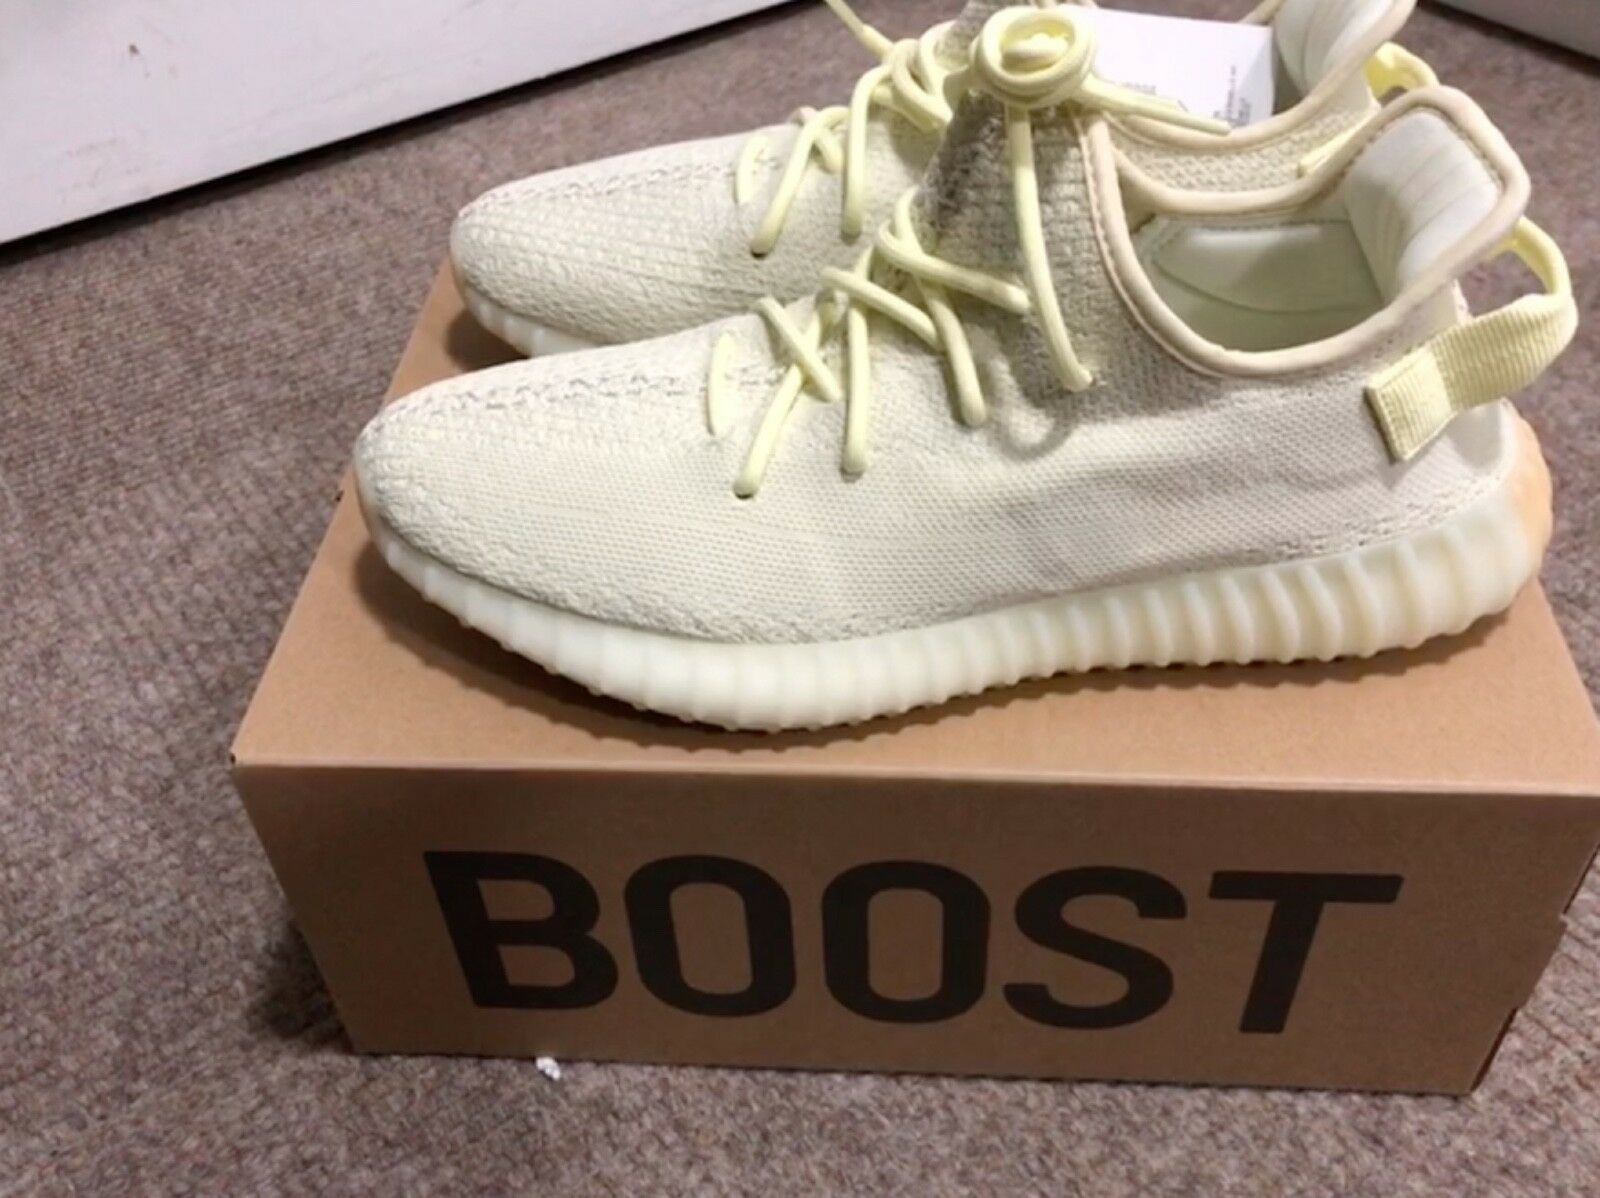 Adidas Yeezy Boost 350 V2 Butter - Size 8 Brand New in box